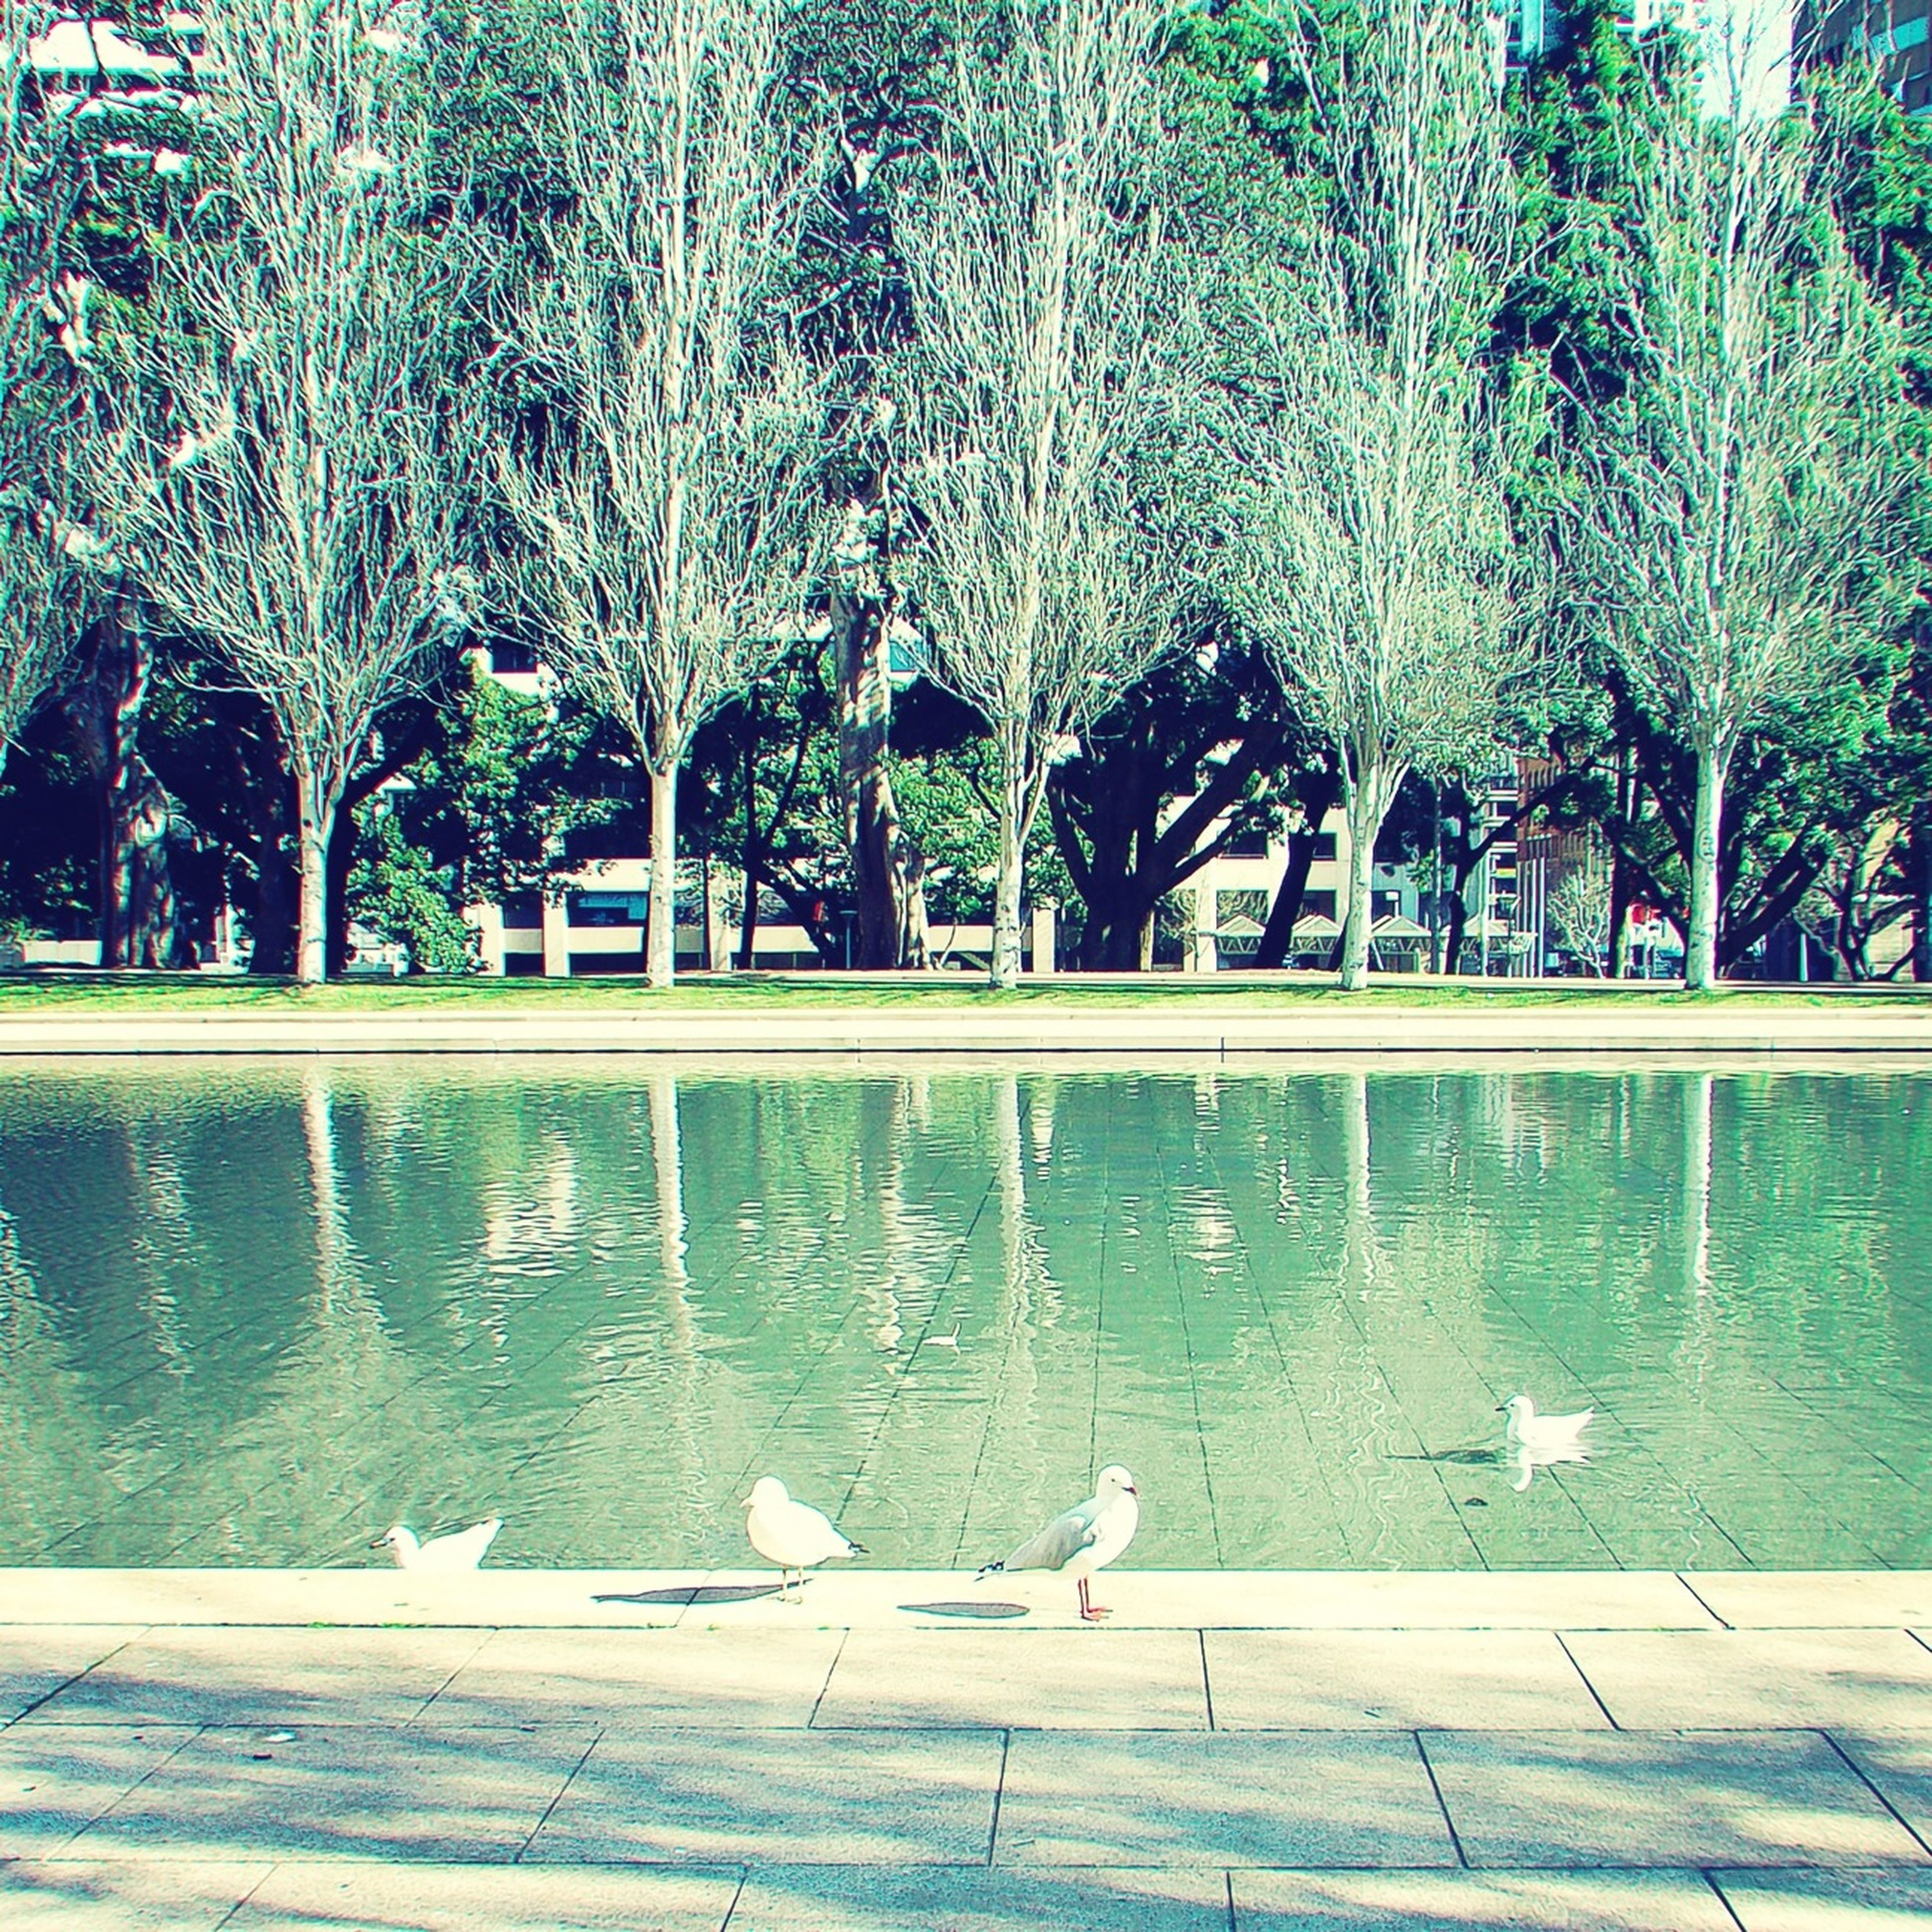 tree, bird, water, animal themes, animals in the wild, wildlife, nature, growth, park - man made space, pond, swimming, lake, beauty in nature, reflection, fountain, day, tranquility, outdoors, green color